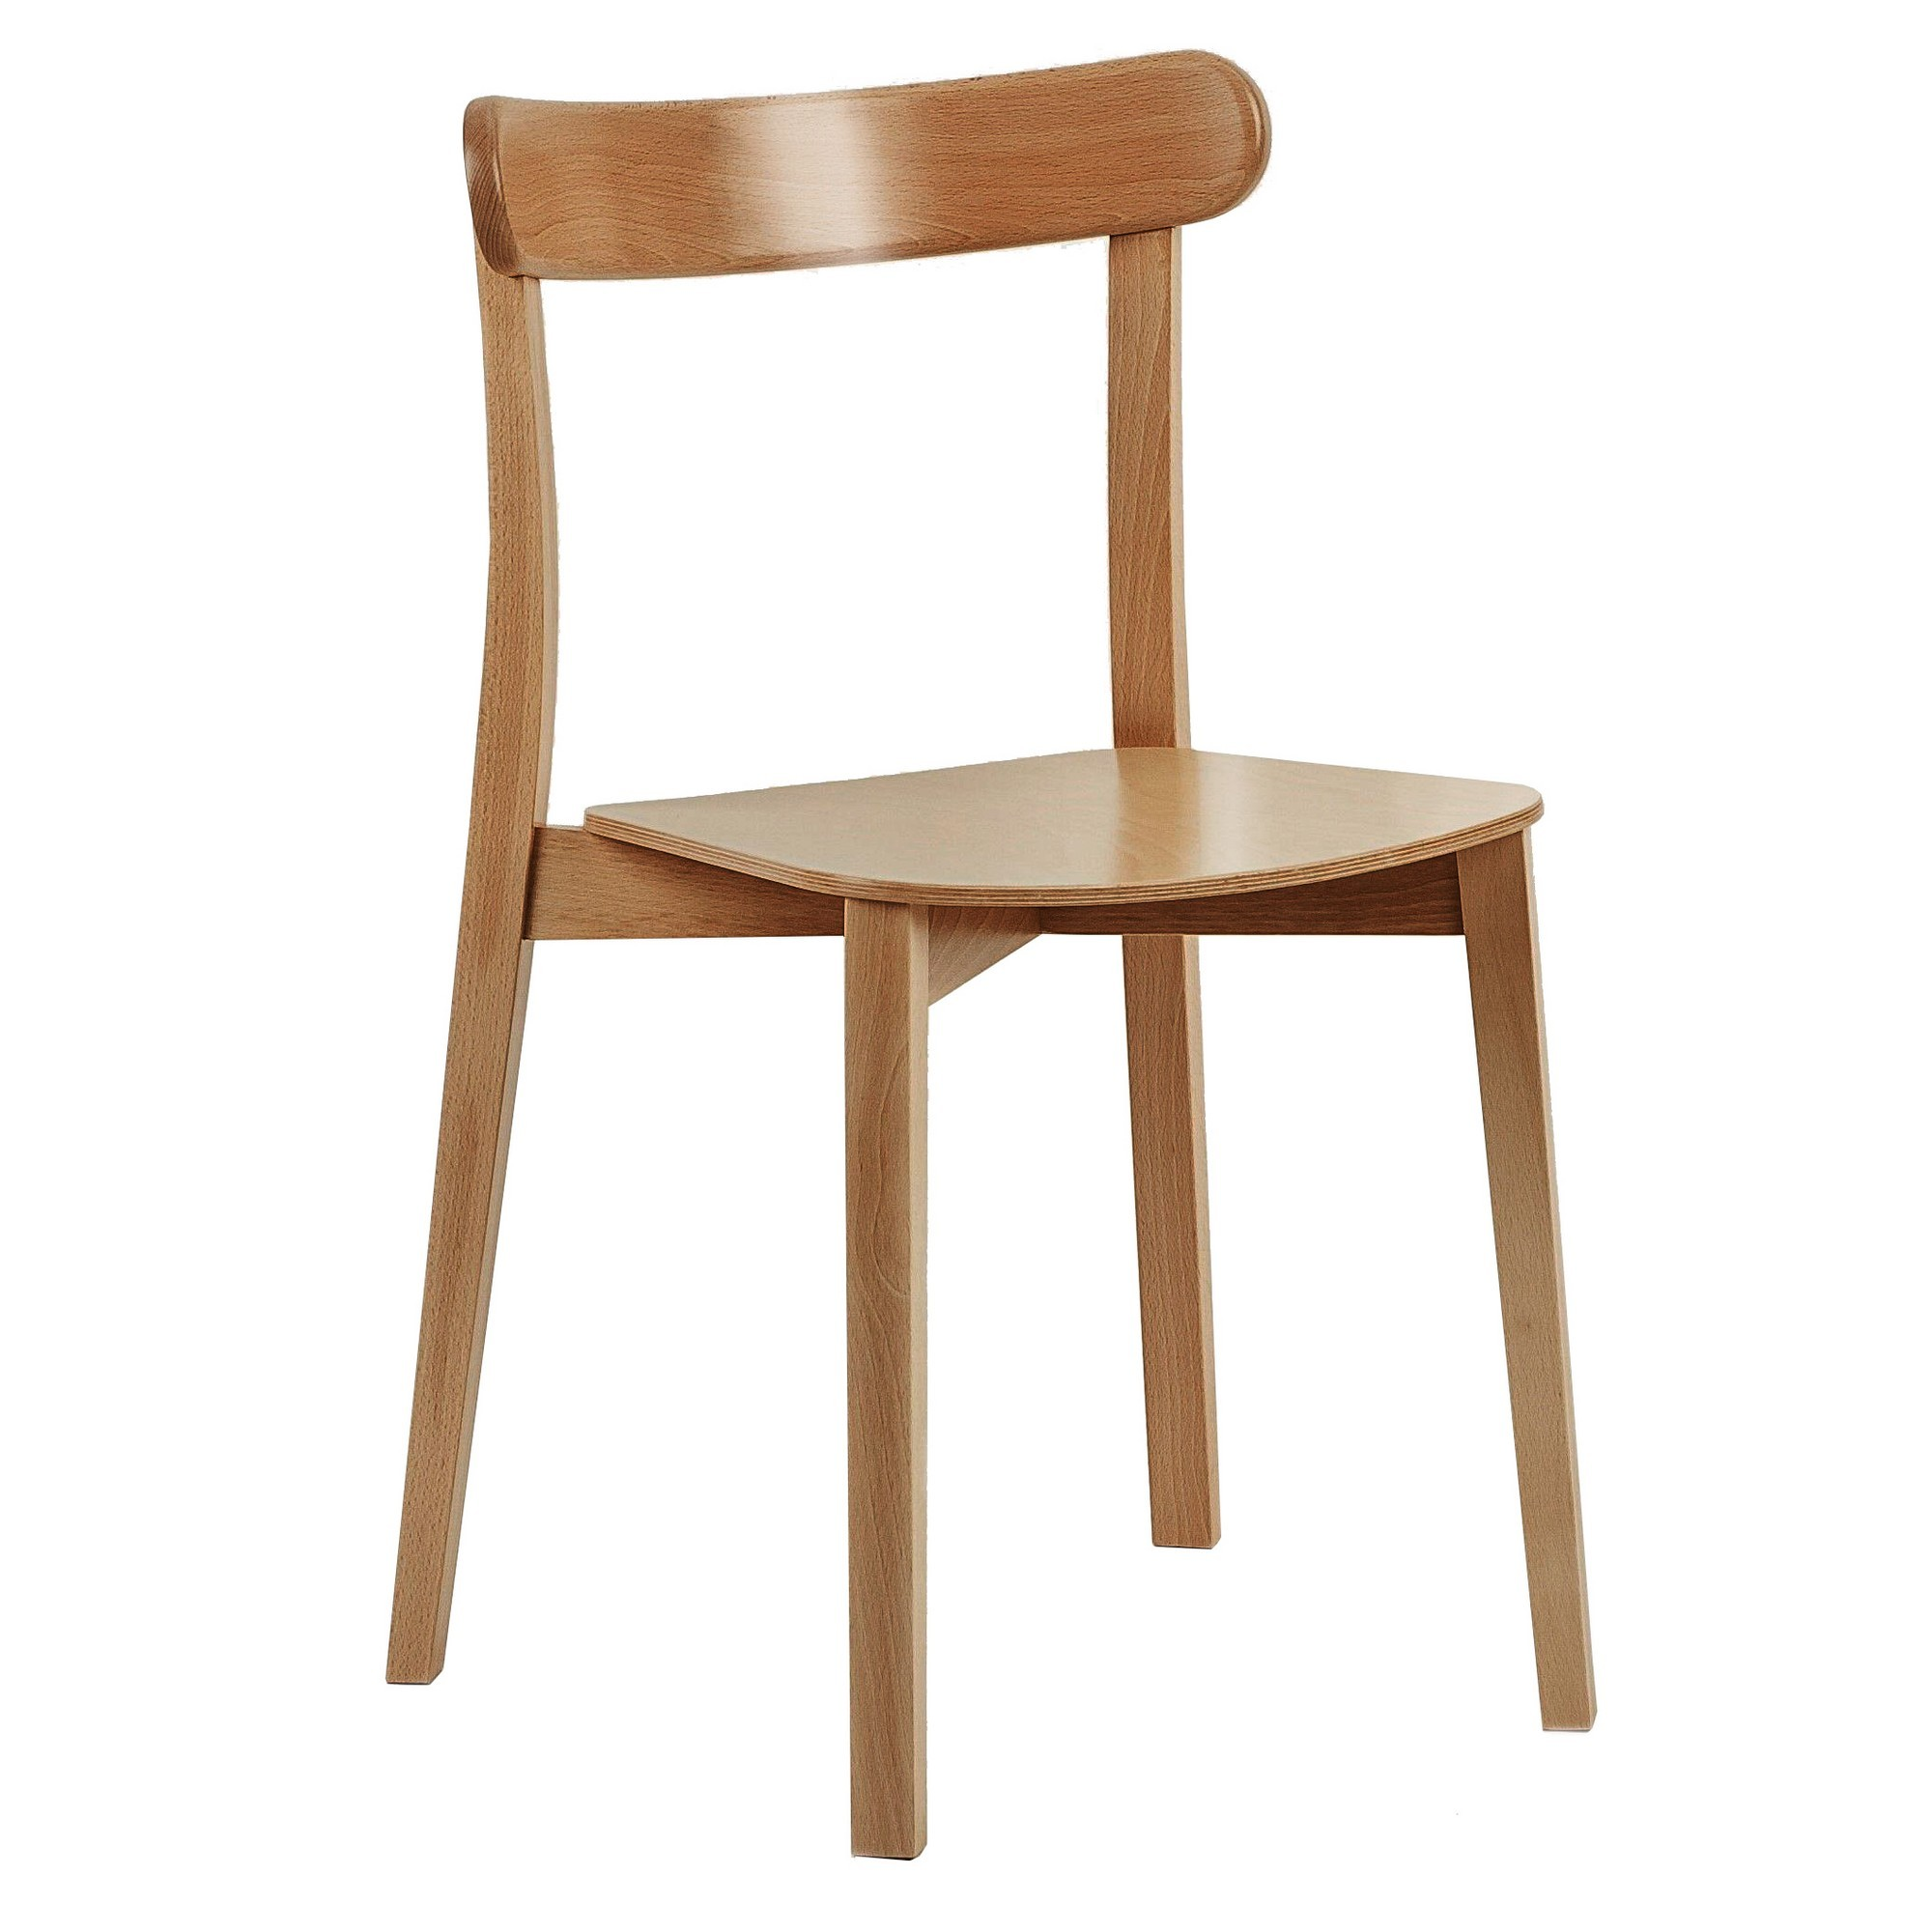 Icho Commercial Grade Beech Timber Dining Chair